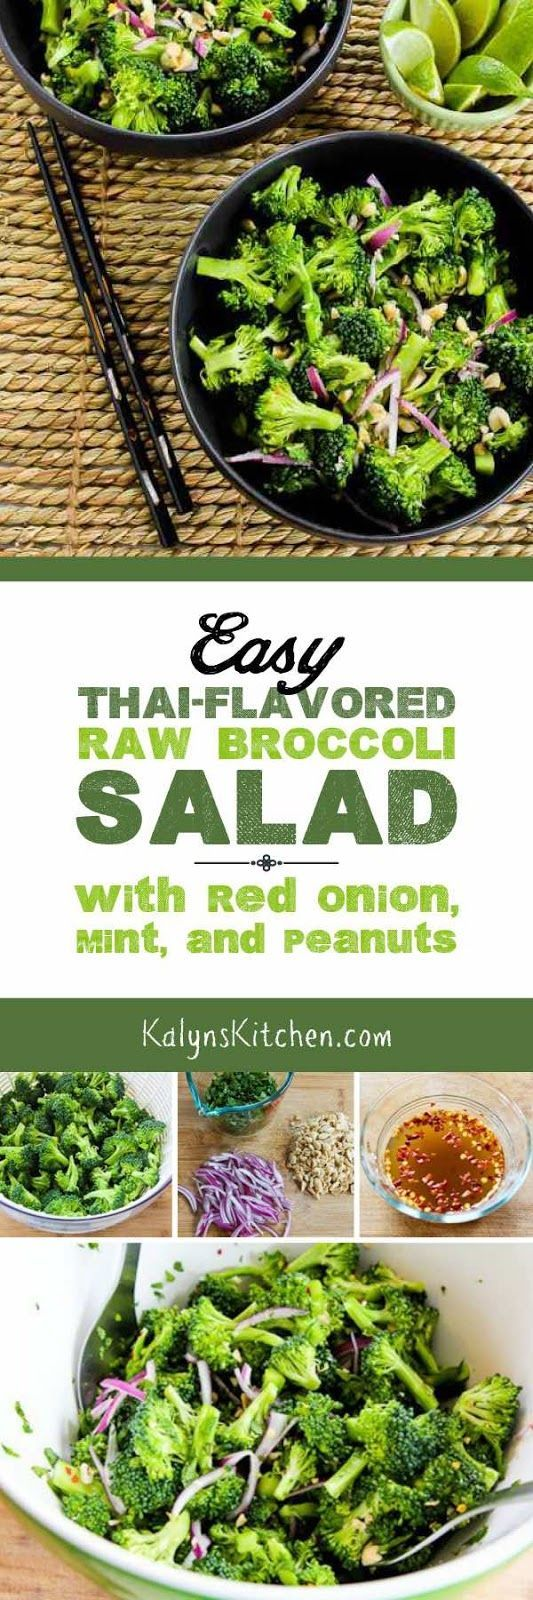 We LOVED this Easy Thai-Flavored Raw Broccoli Salad with Red Onion, Mint, and Peanuts, and this tasty salad is low-carb, Keto,  low-glycemic, gluten-free, dairy-free, and South Beach Diet friendly. [found on http://KalynsKitchen.com]